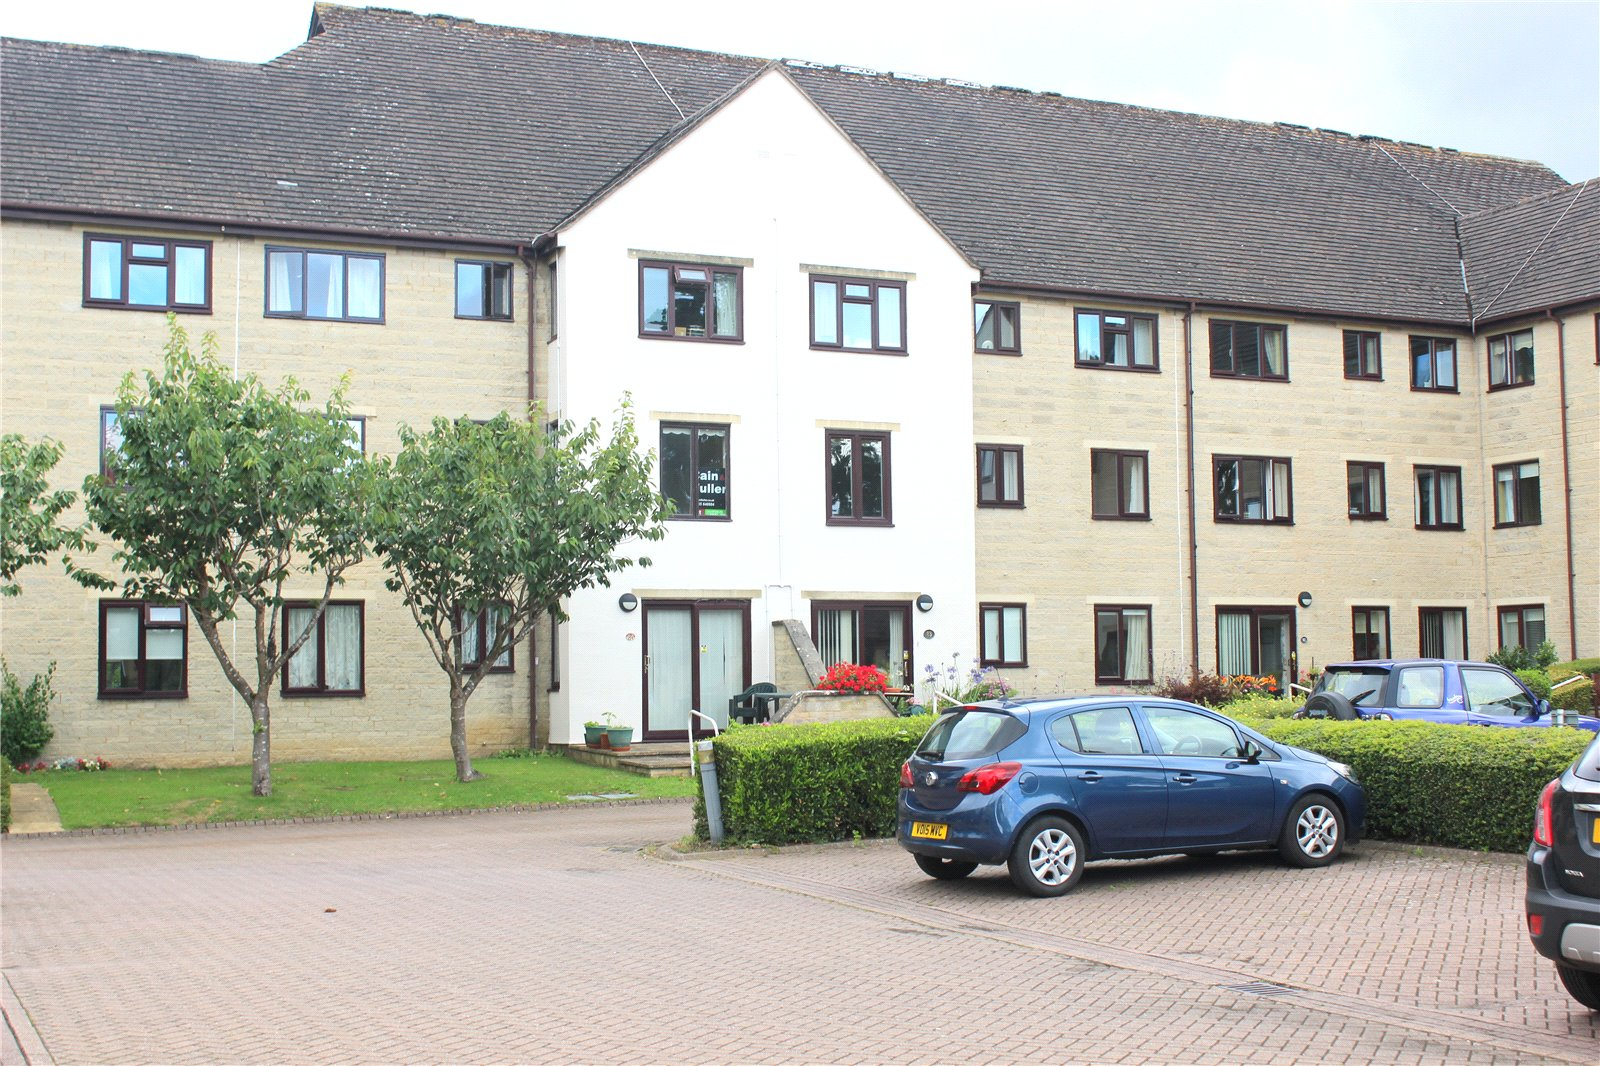 2 Bedrooms Flat for sale in Barclay Court Trafalgar Road Cirencester GL7